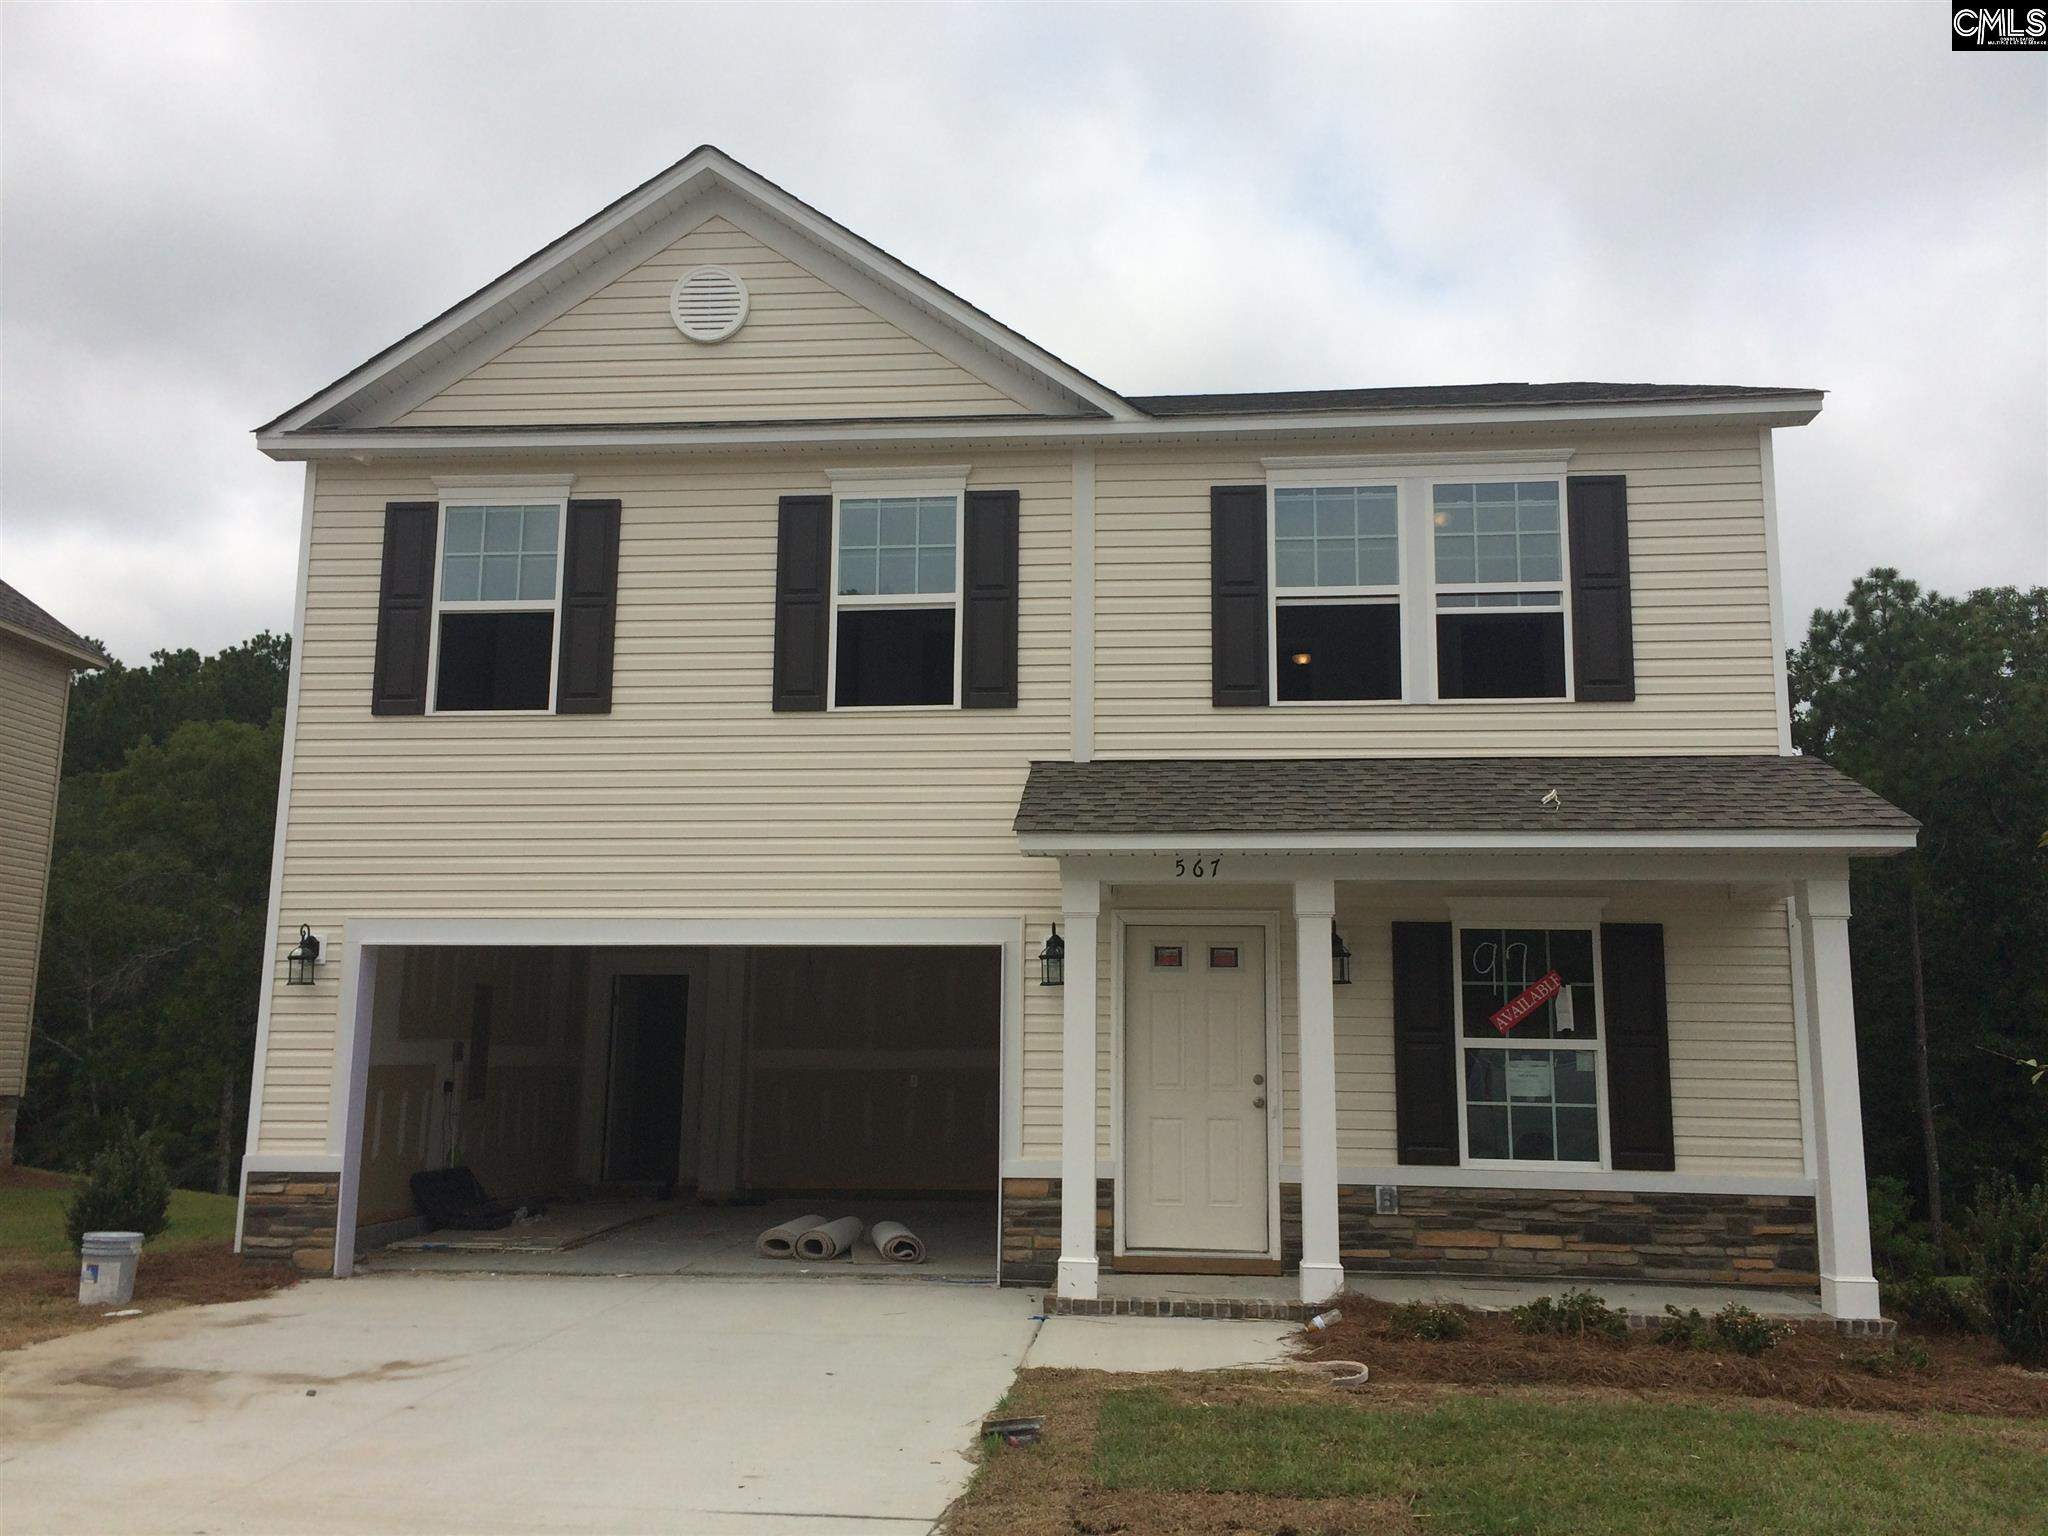 567 Teaberry #97 Columbia, SC 29229